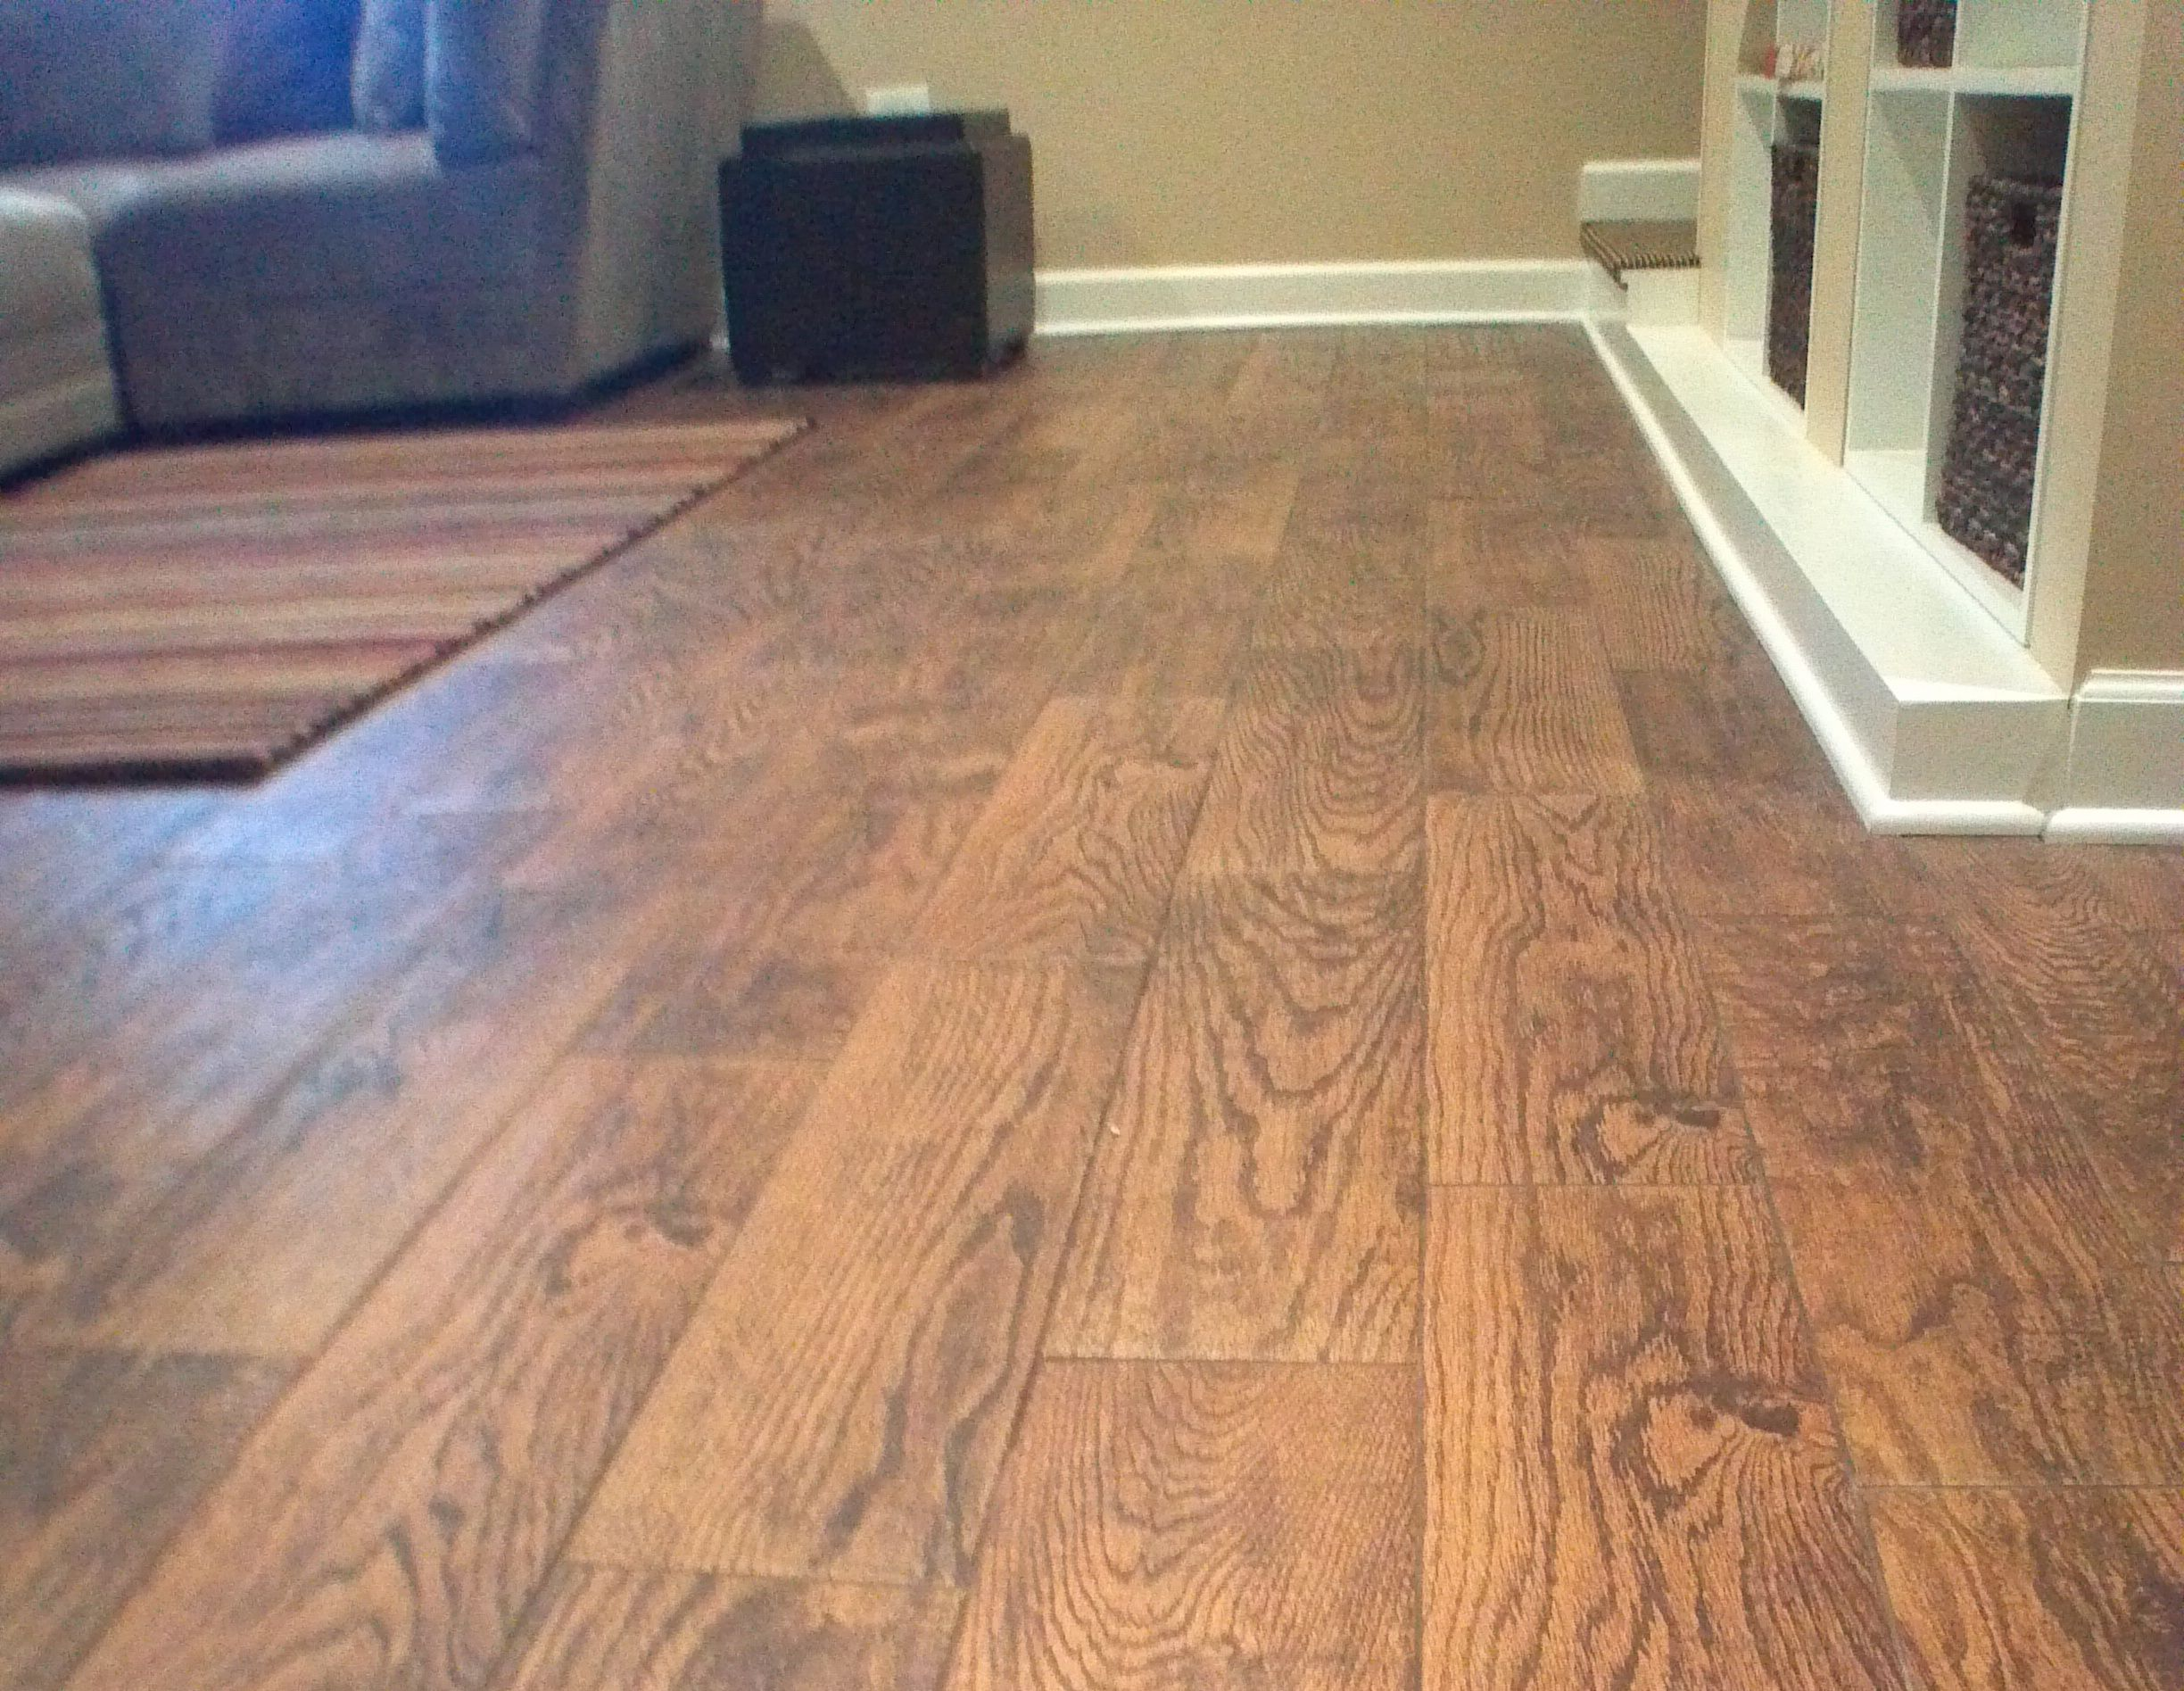 Many Tile Manufacturers Supply Wood Look A Great Flood Resistant Option For